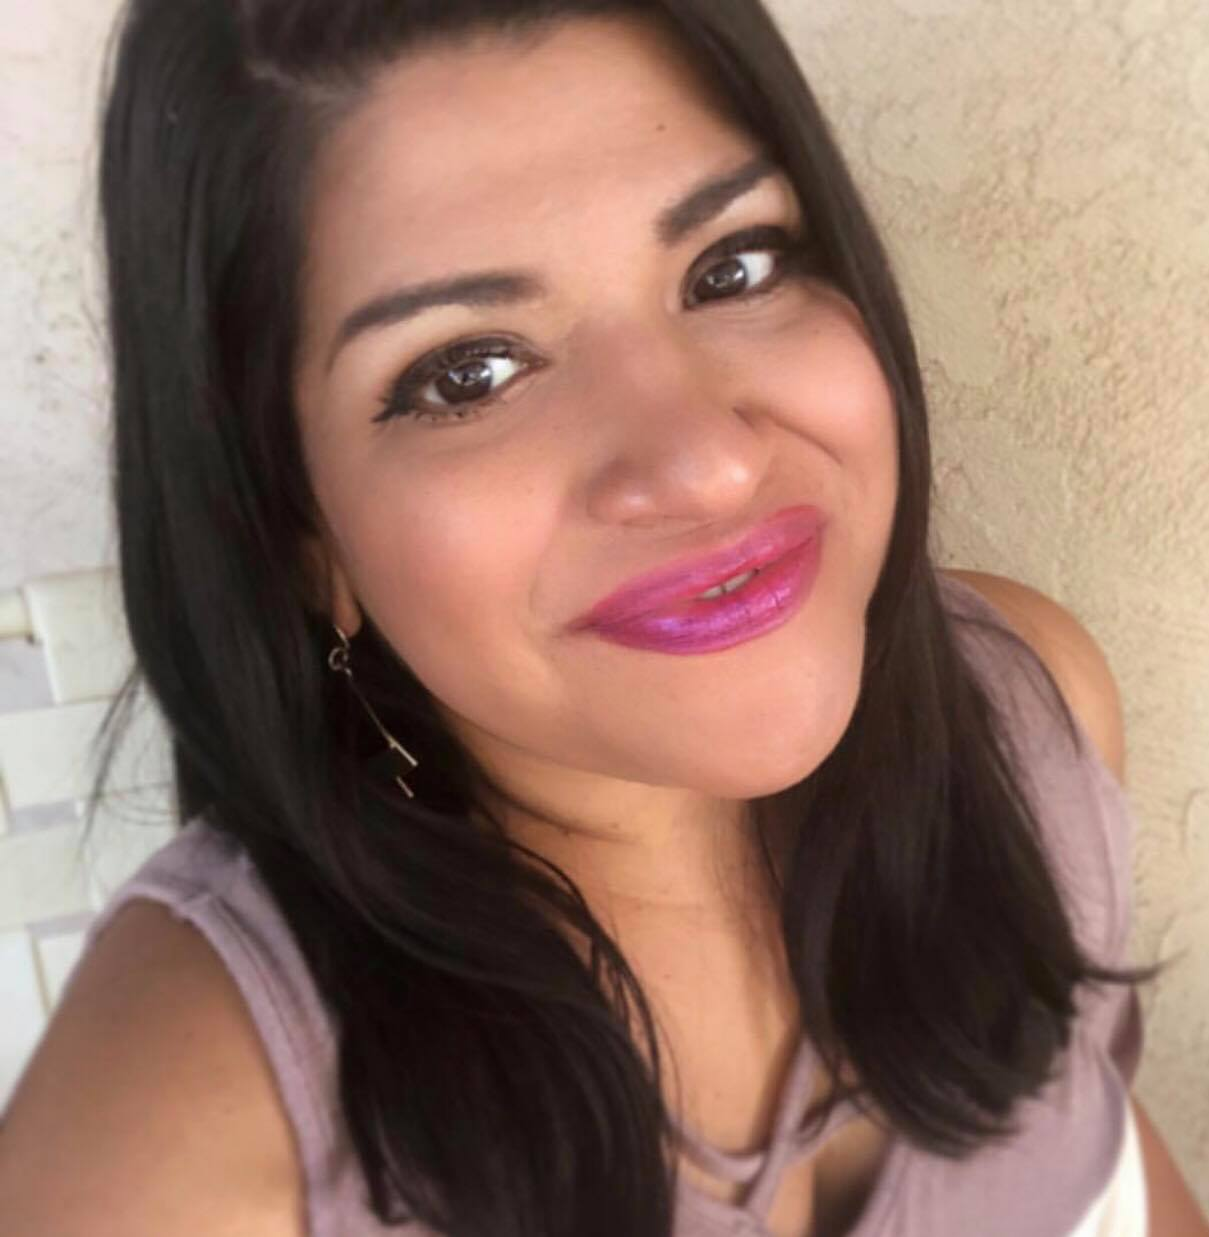 About the Author - Hi! My name is Inez and I am the mom behind For the Love of Mom, a website dedicated to inspiring women to pursue greatness in life & motherhood.